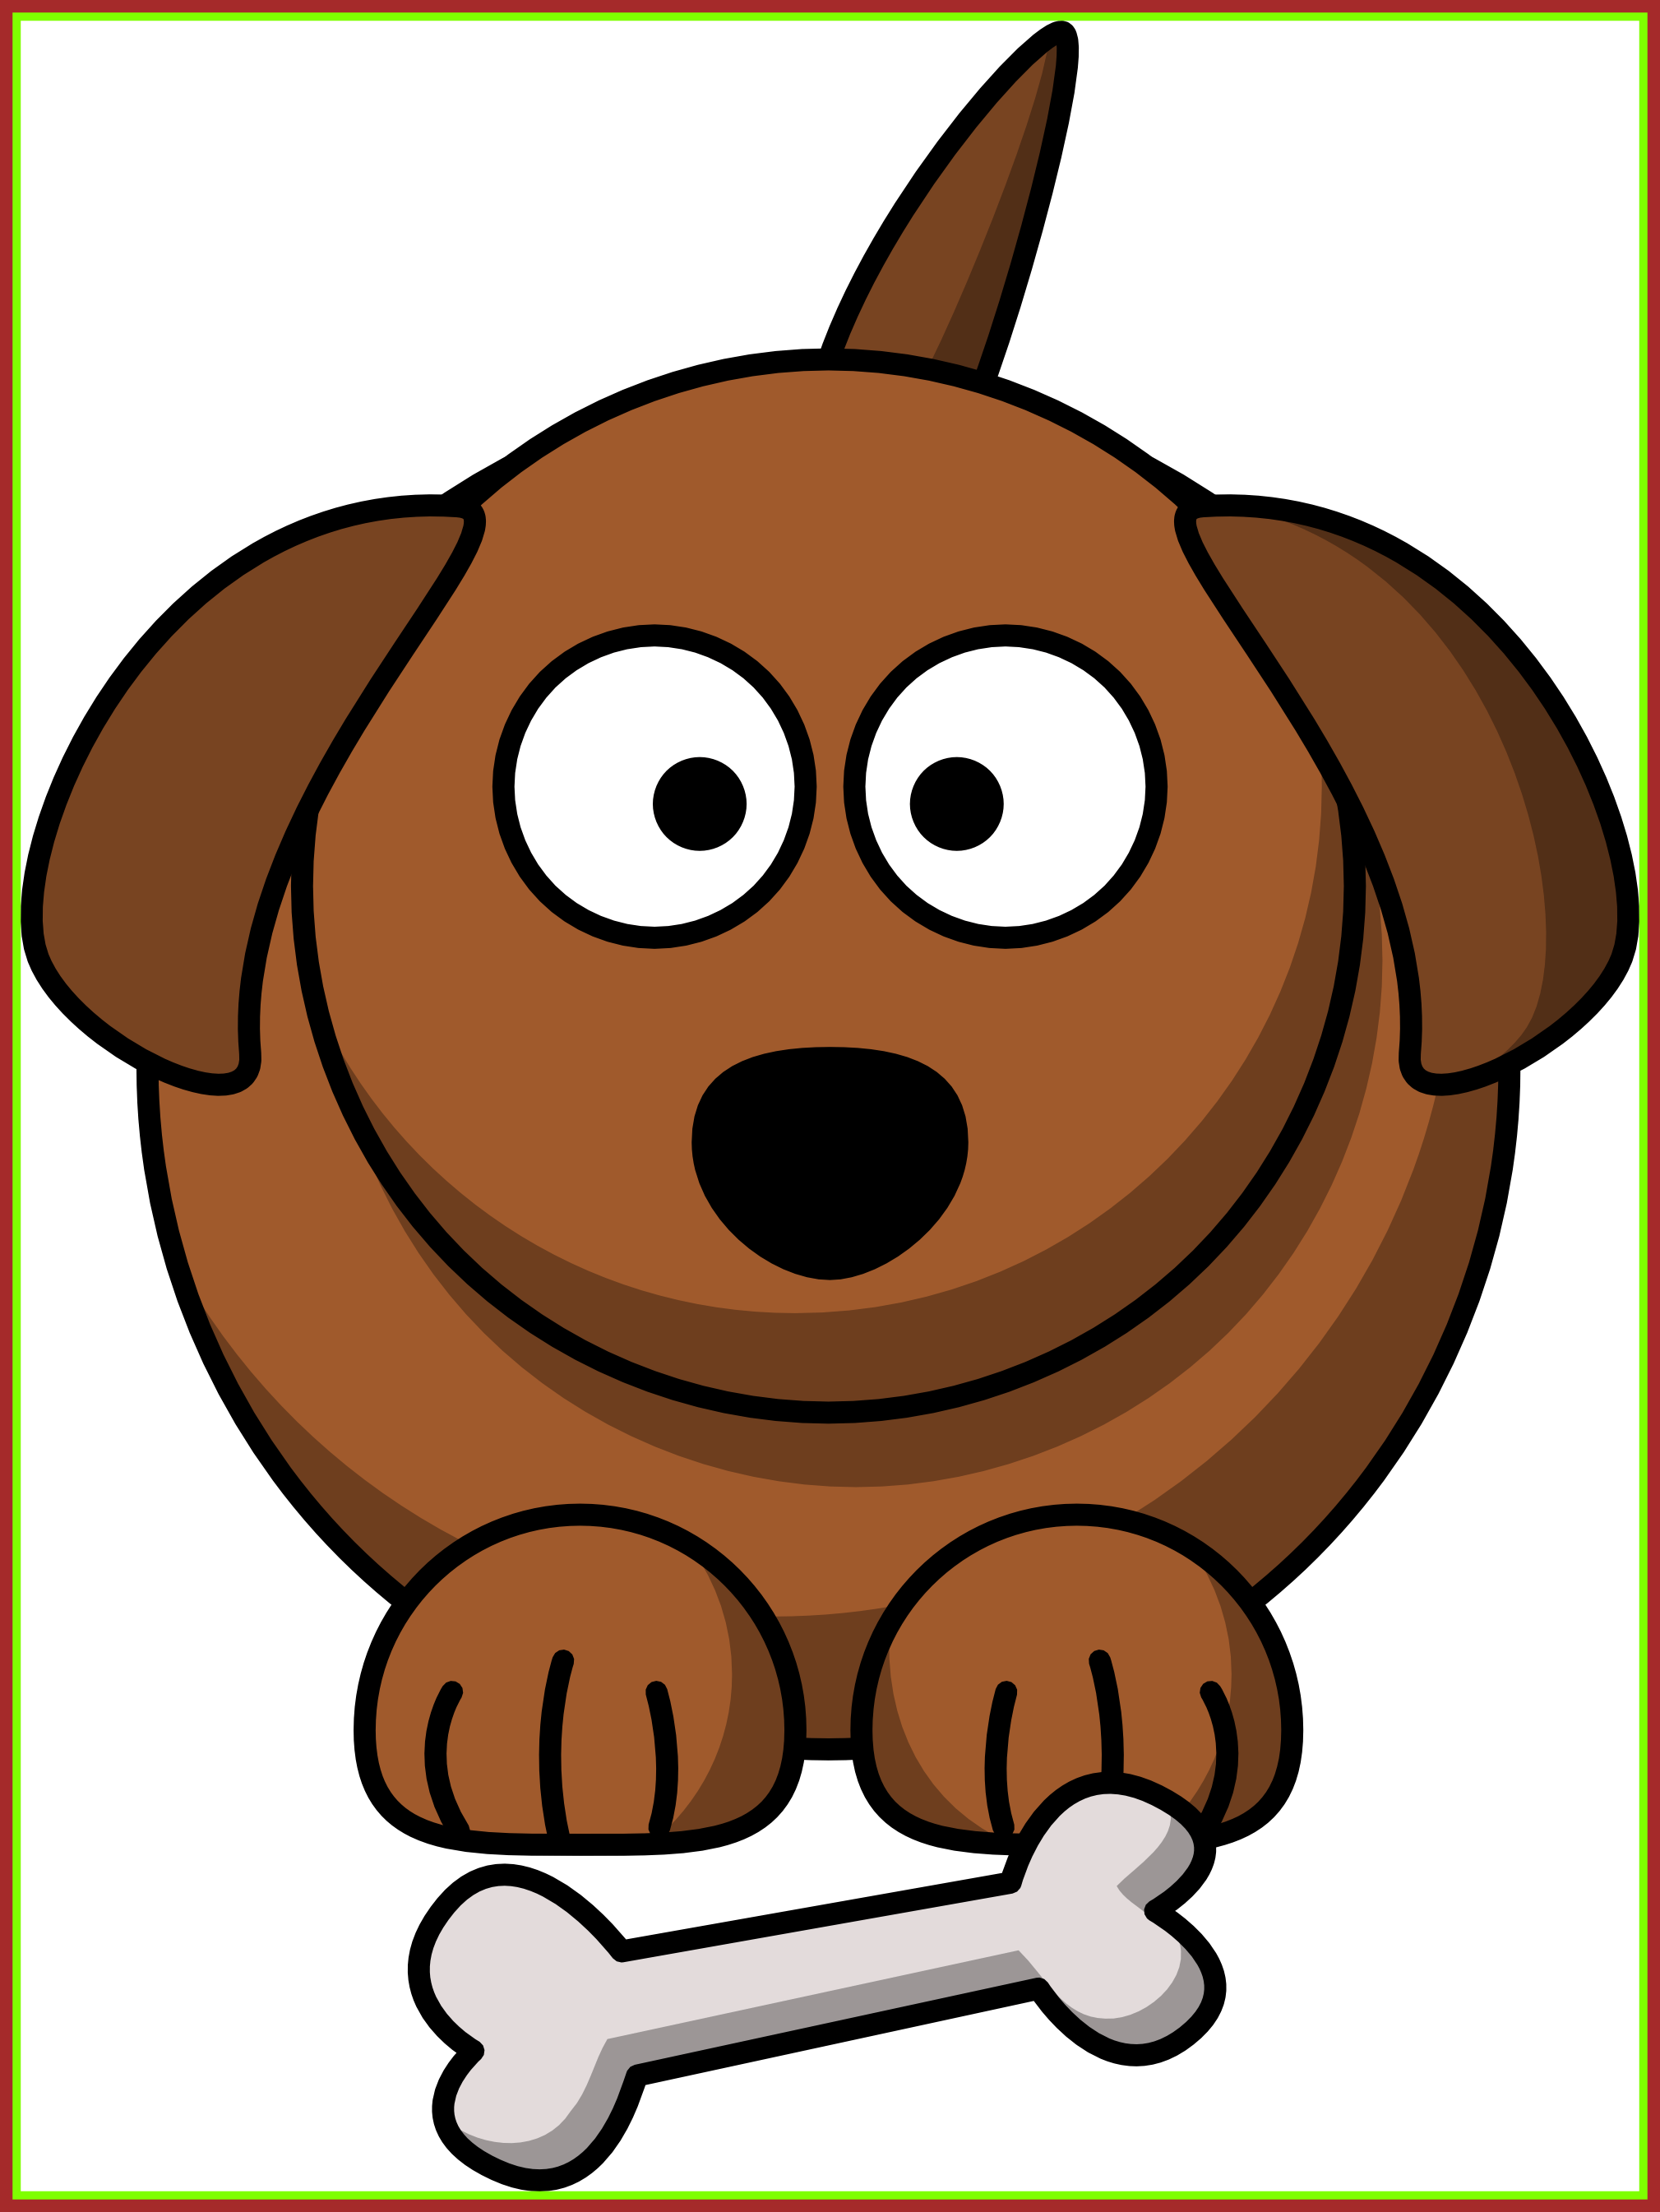 Assistance dog clipart png transparent Shocking The Collection Of Easy Dog Drawings For Kids To Draw A ... png transparent